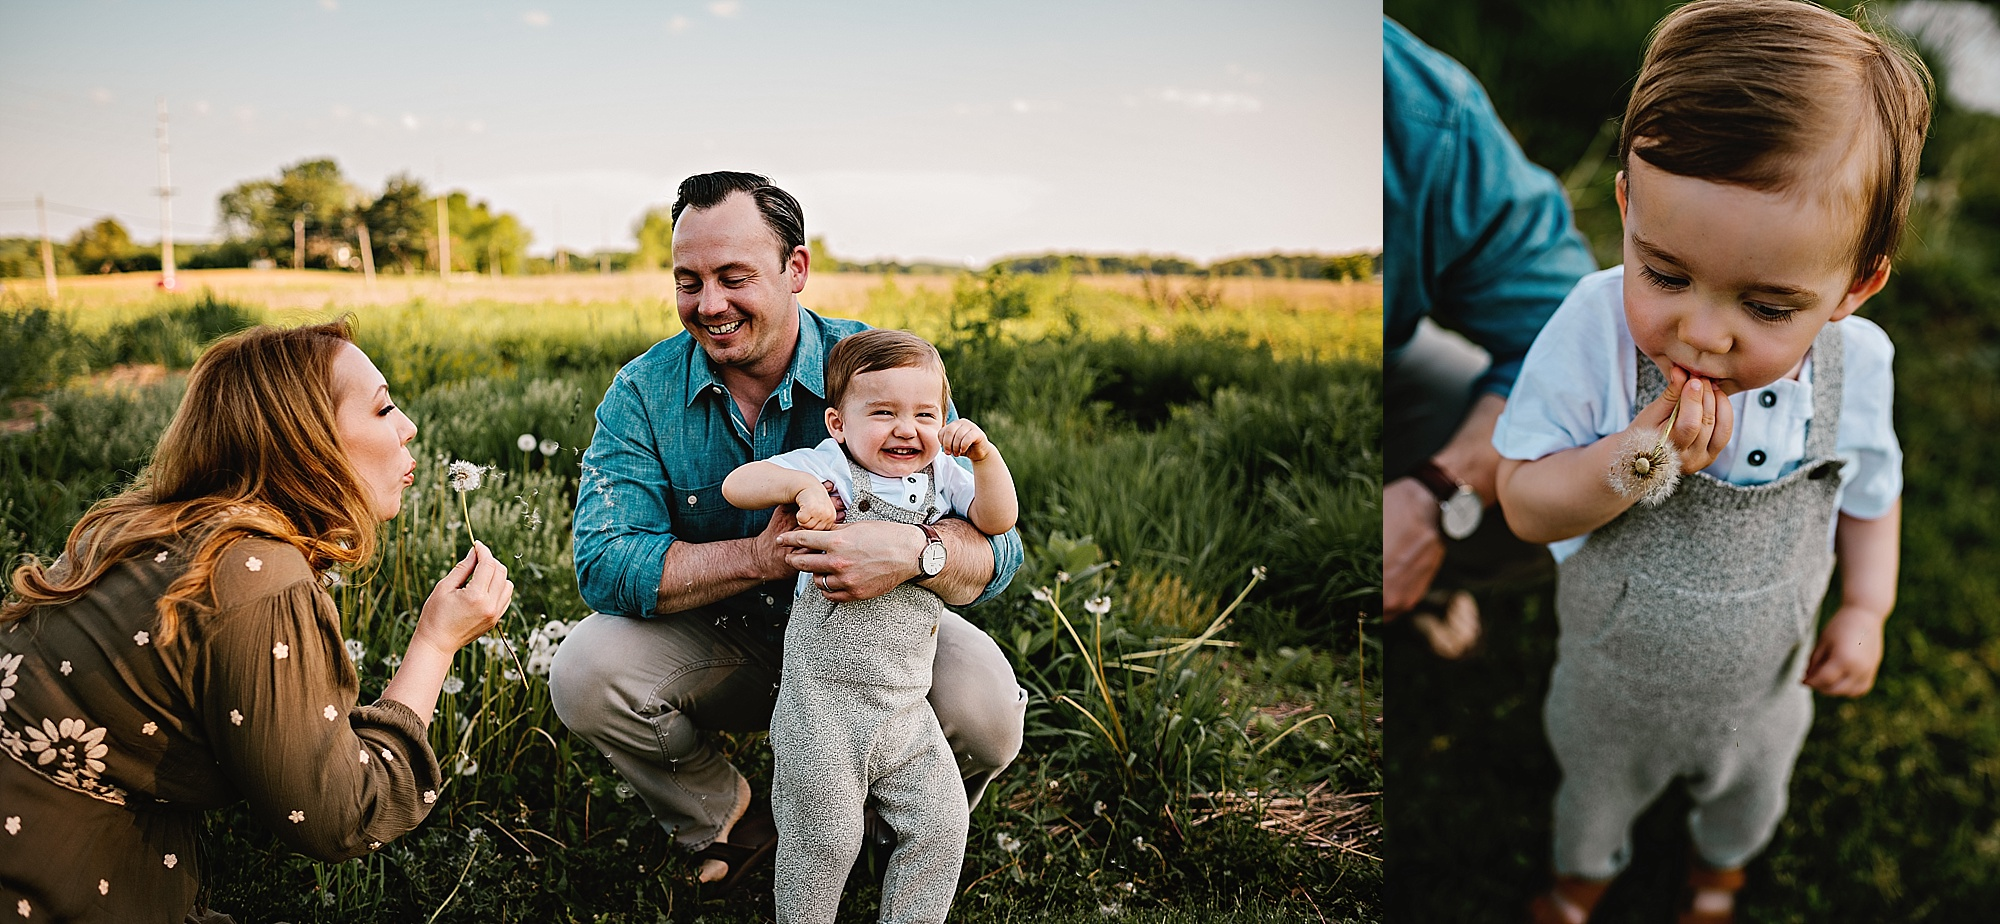 lauren-grayson-photography-cleveland-ohio-photographer-summer-outdoor-fields-family-child-baby-photo-session_0518.jpg